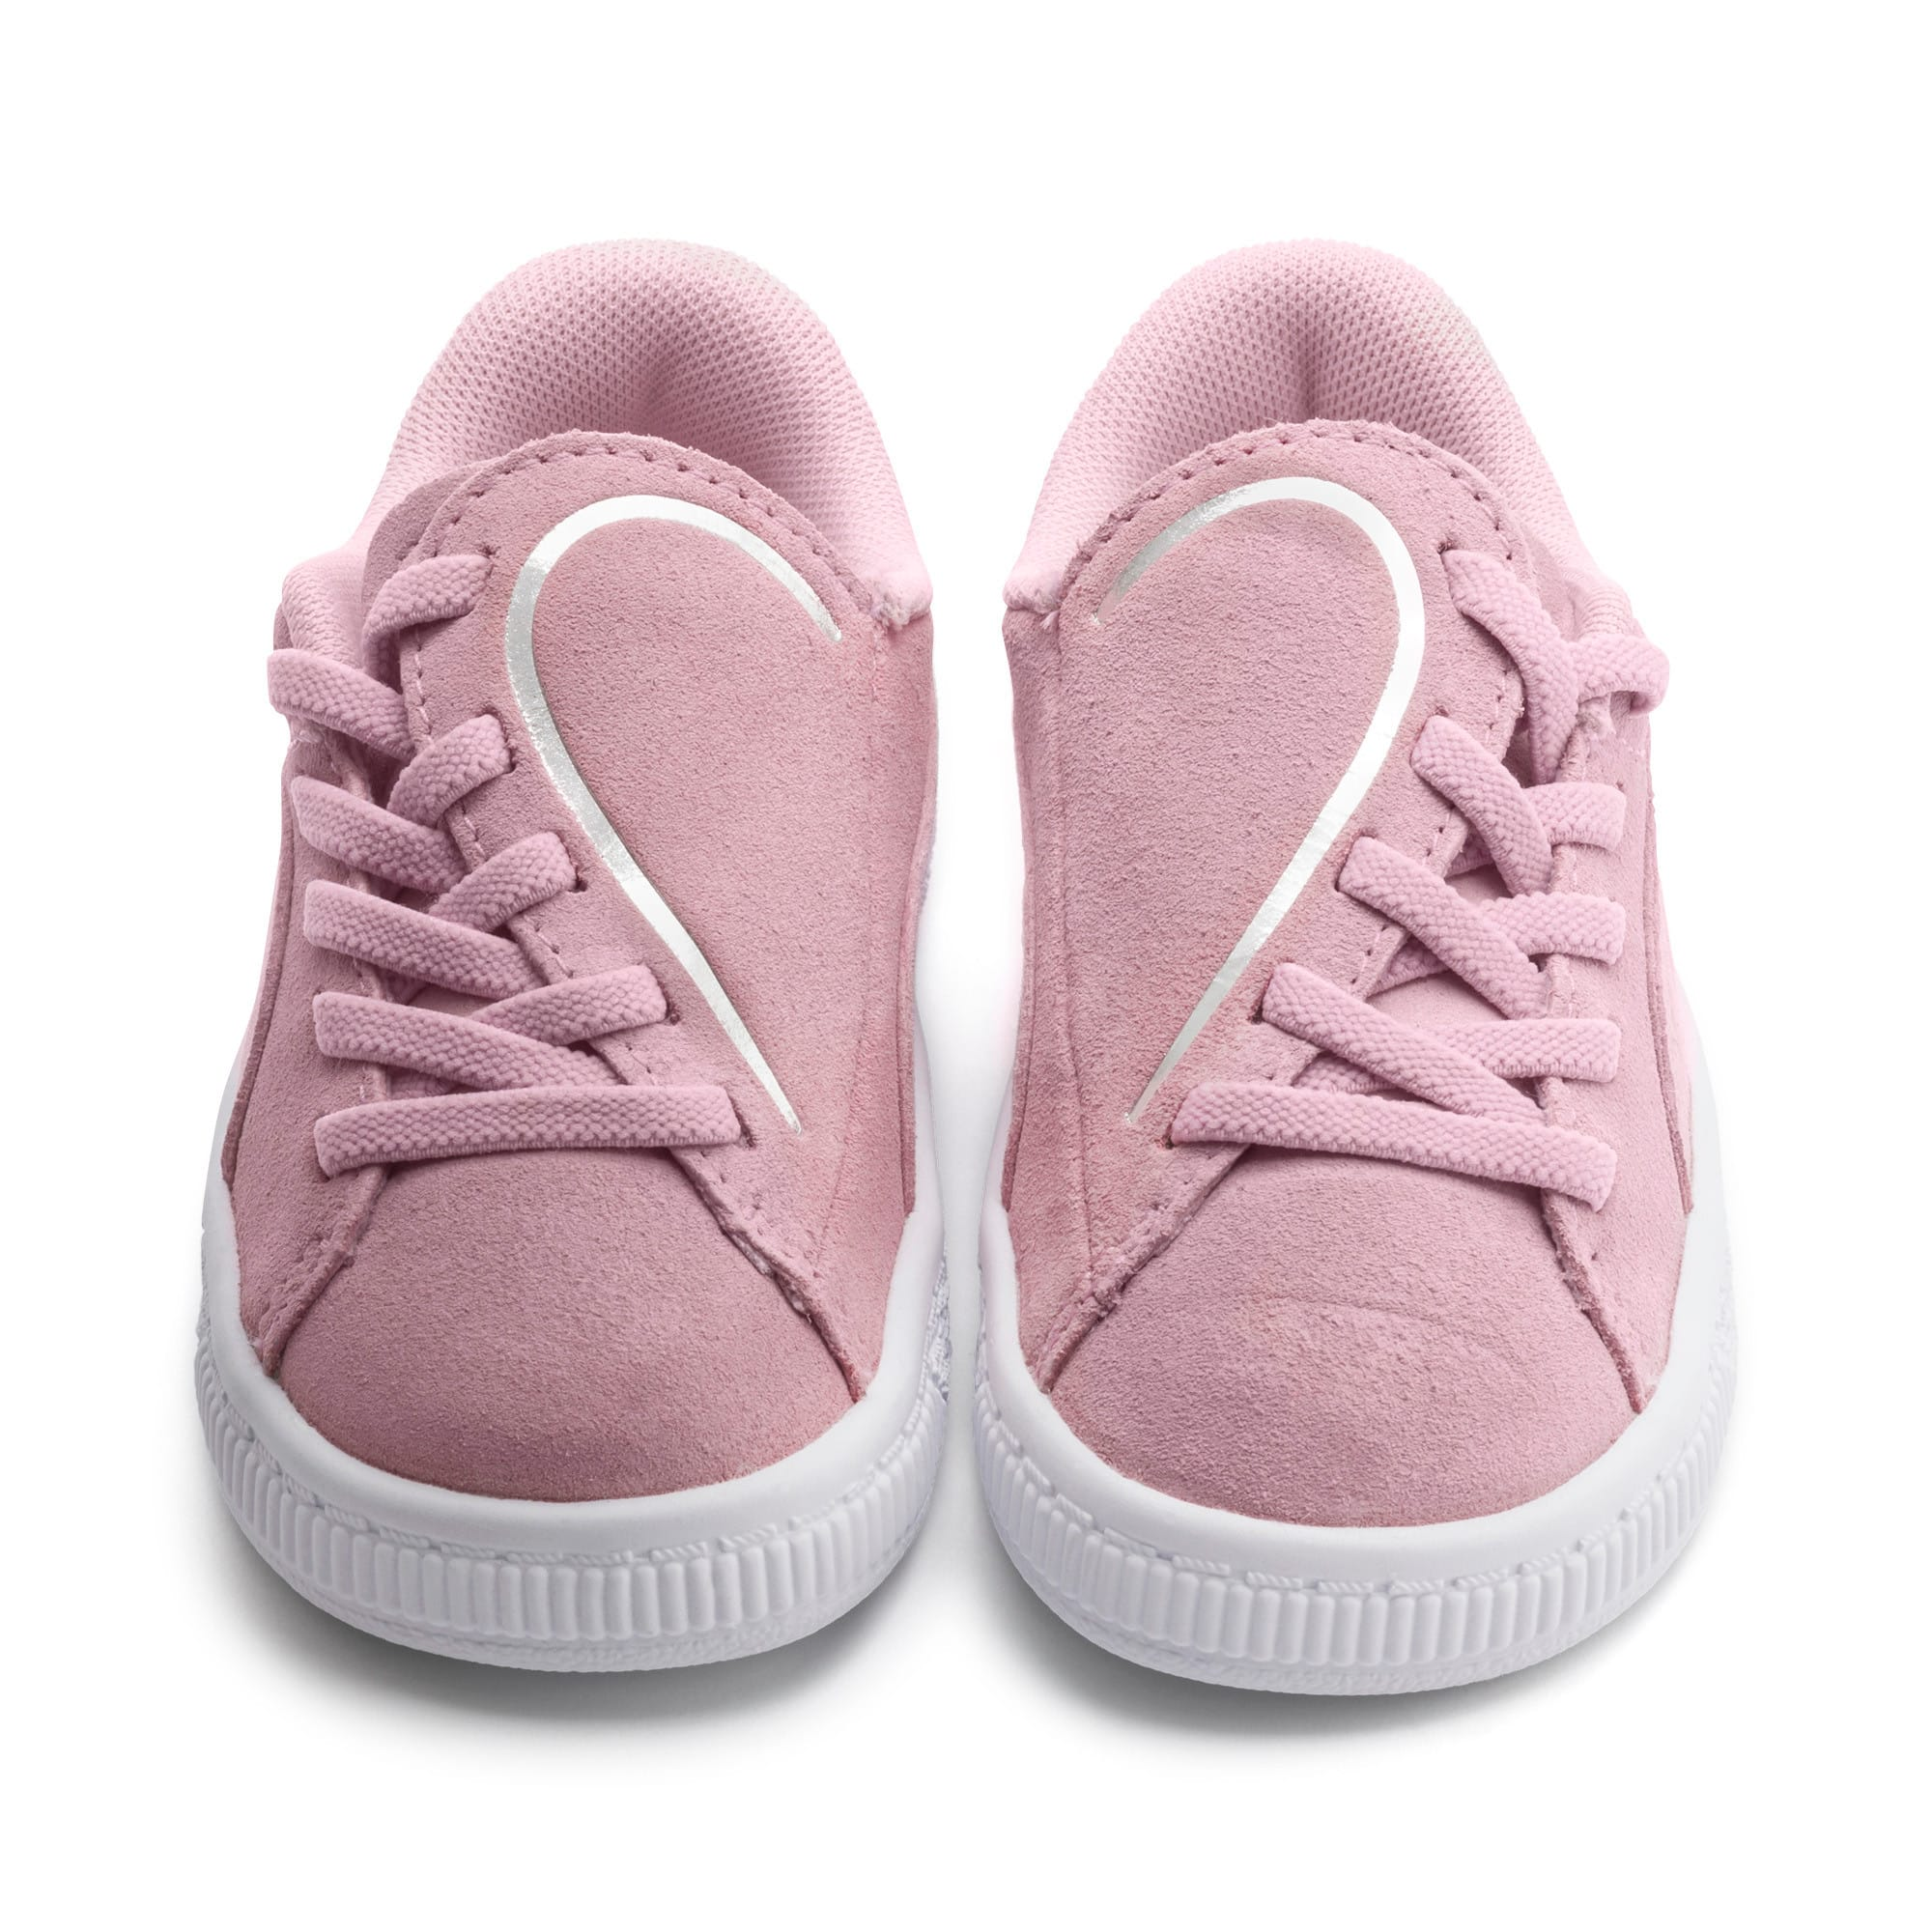 Thumbnail 7 of Suede Crush AC Toddler Shoes, Pale Pink-Puma Silver, medium